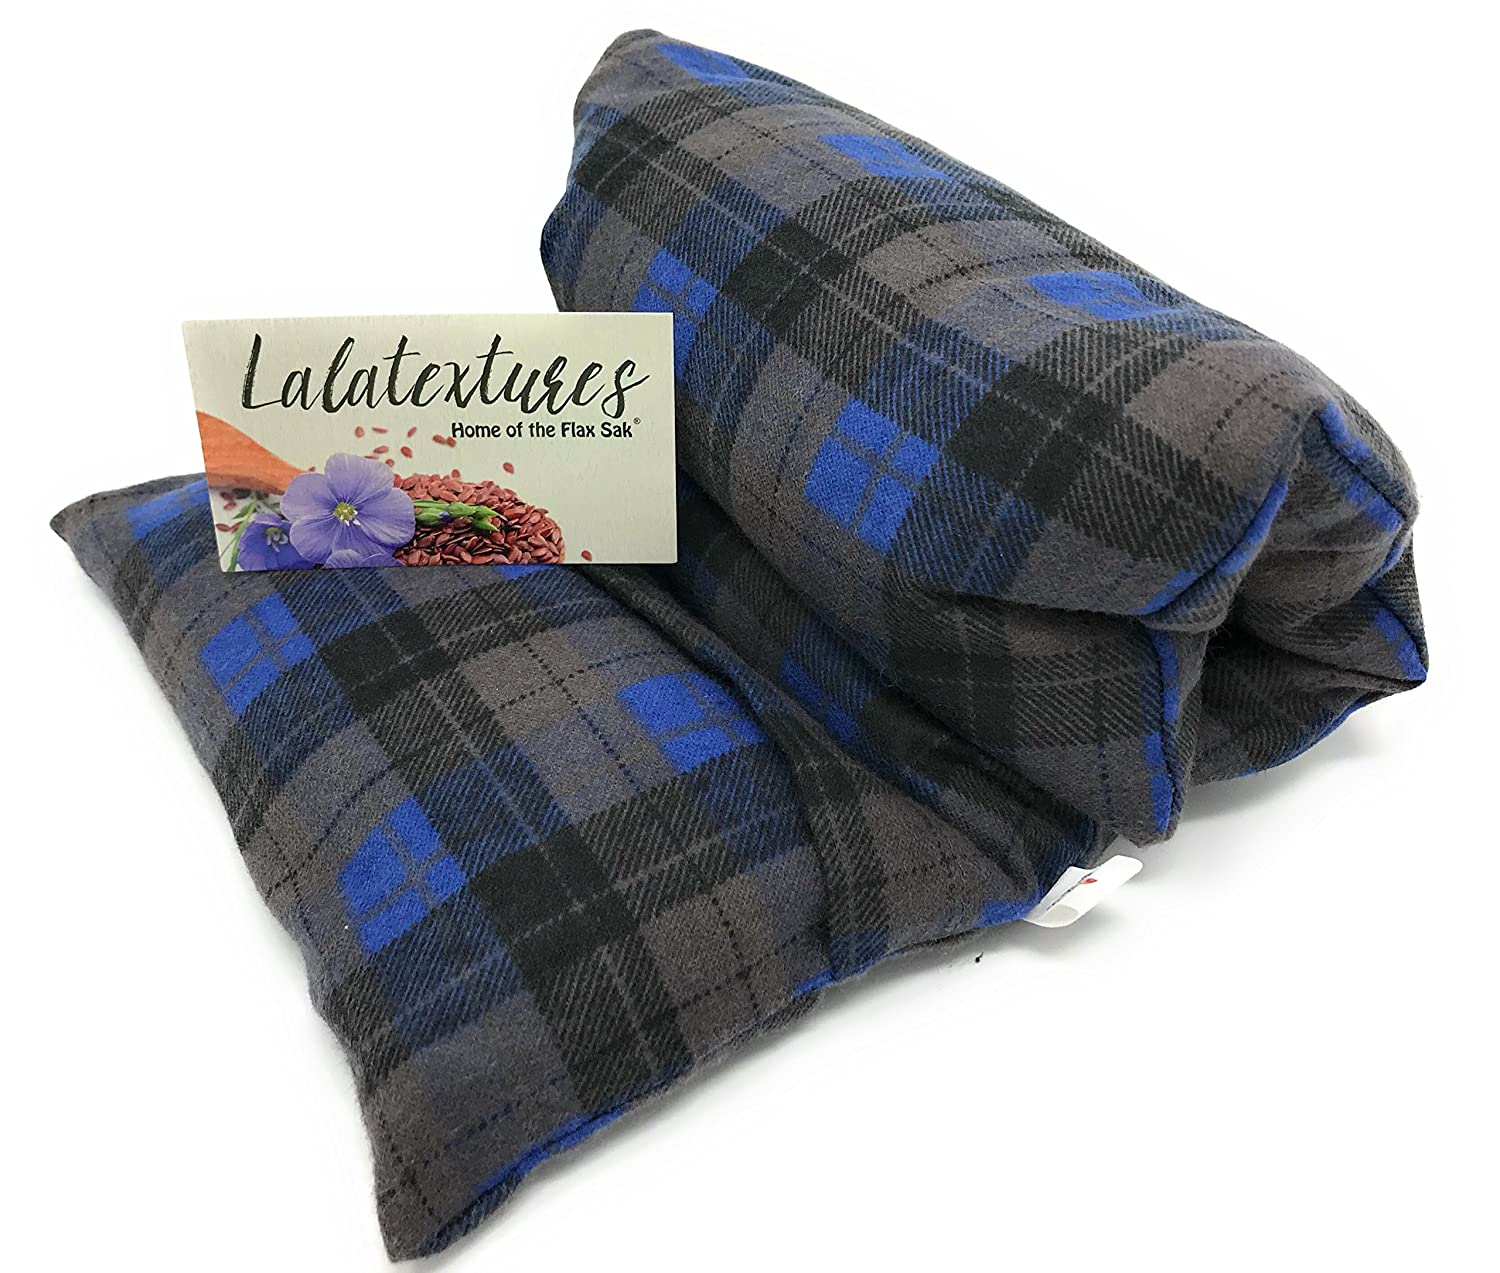 The Flax Sak Large Lavender Scented Microwavable With Washable Cover Hot//Cold Pack Charcoal Grey and Blue.